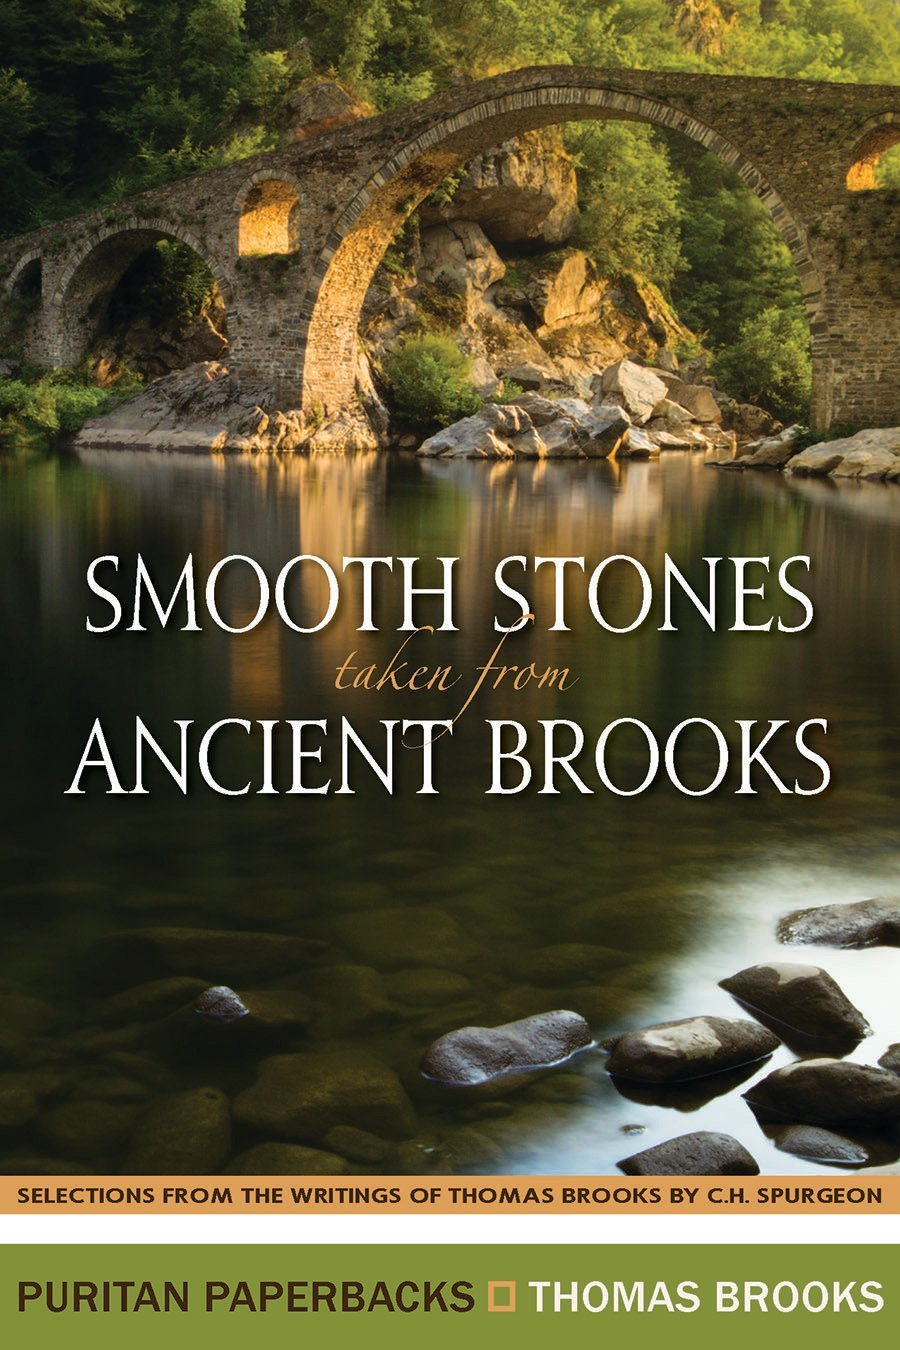 Smooth Stones taken from Ancient Brooks